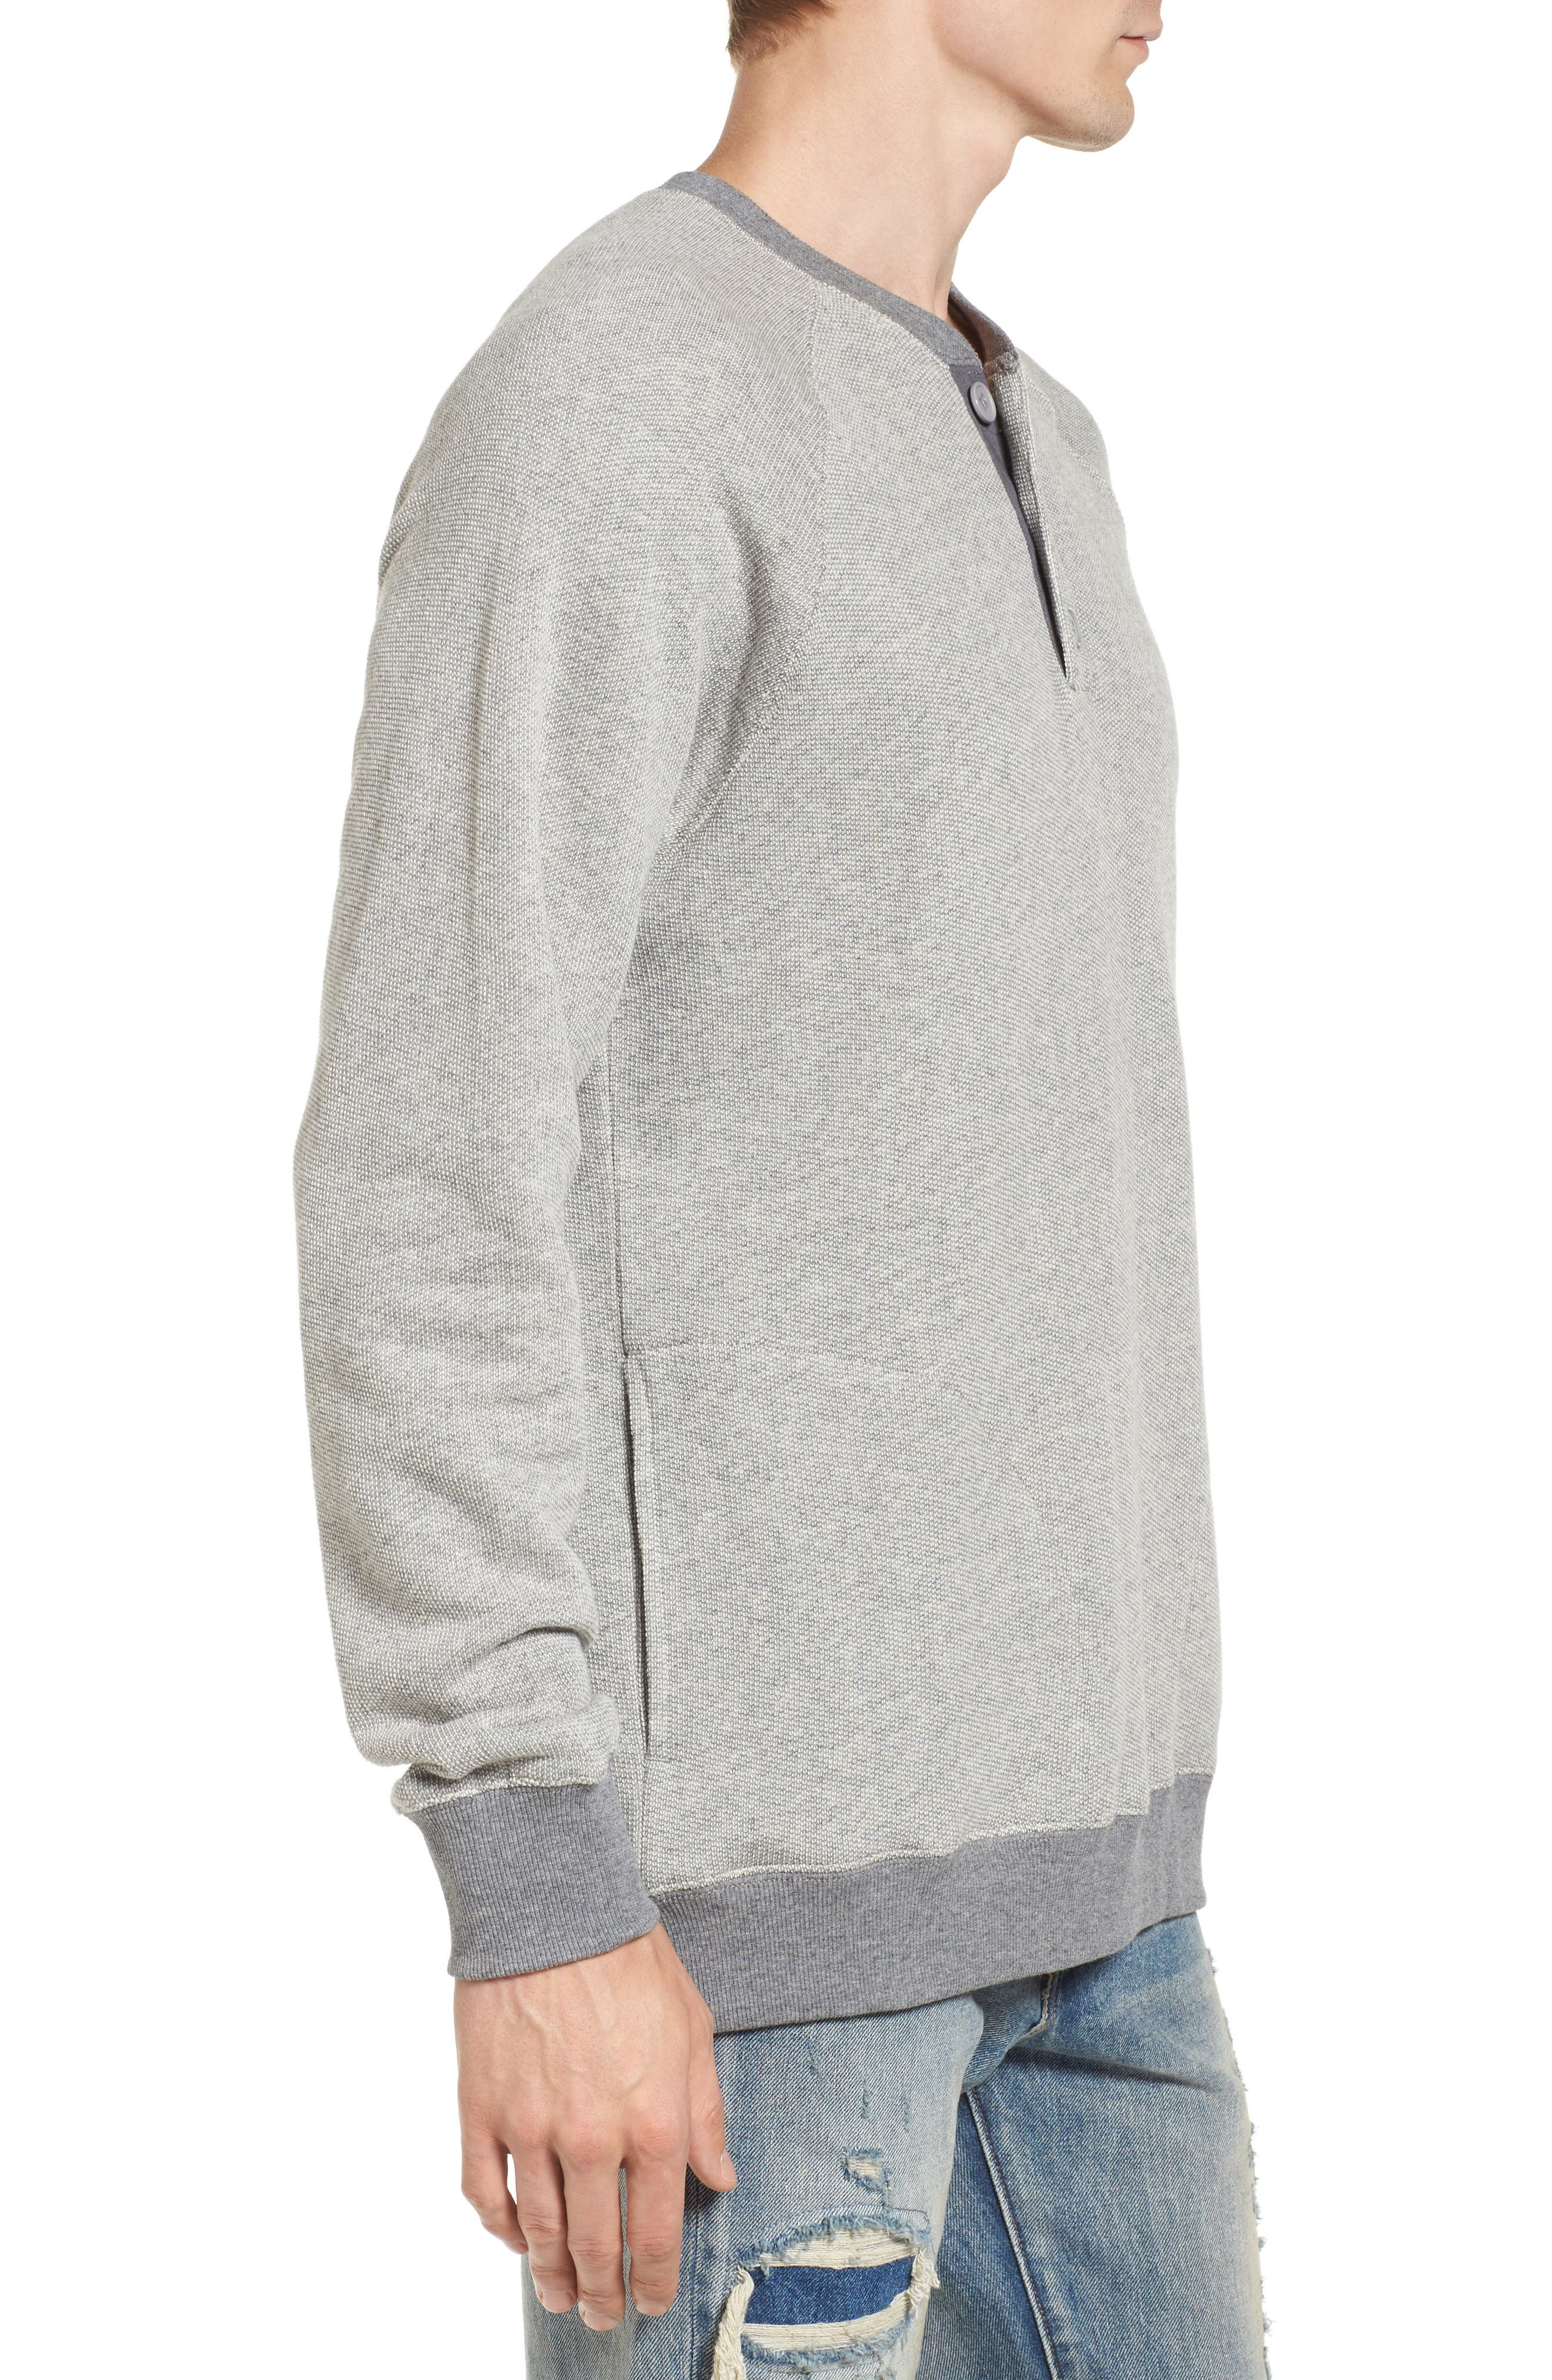 Capo Henley Pullover,                             Alternate thumbnail 3, color,                             051